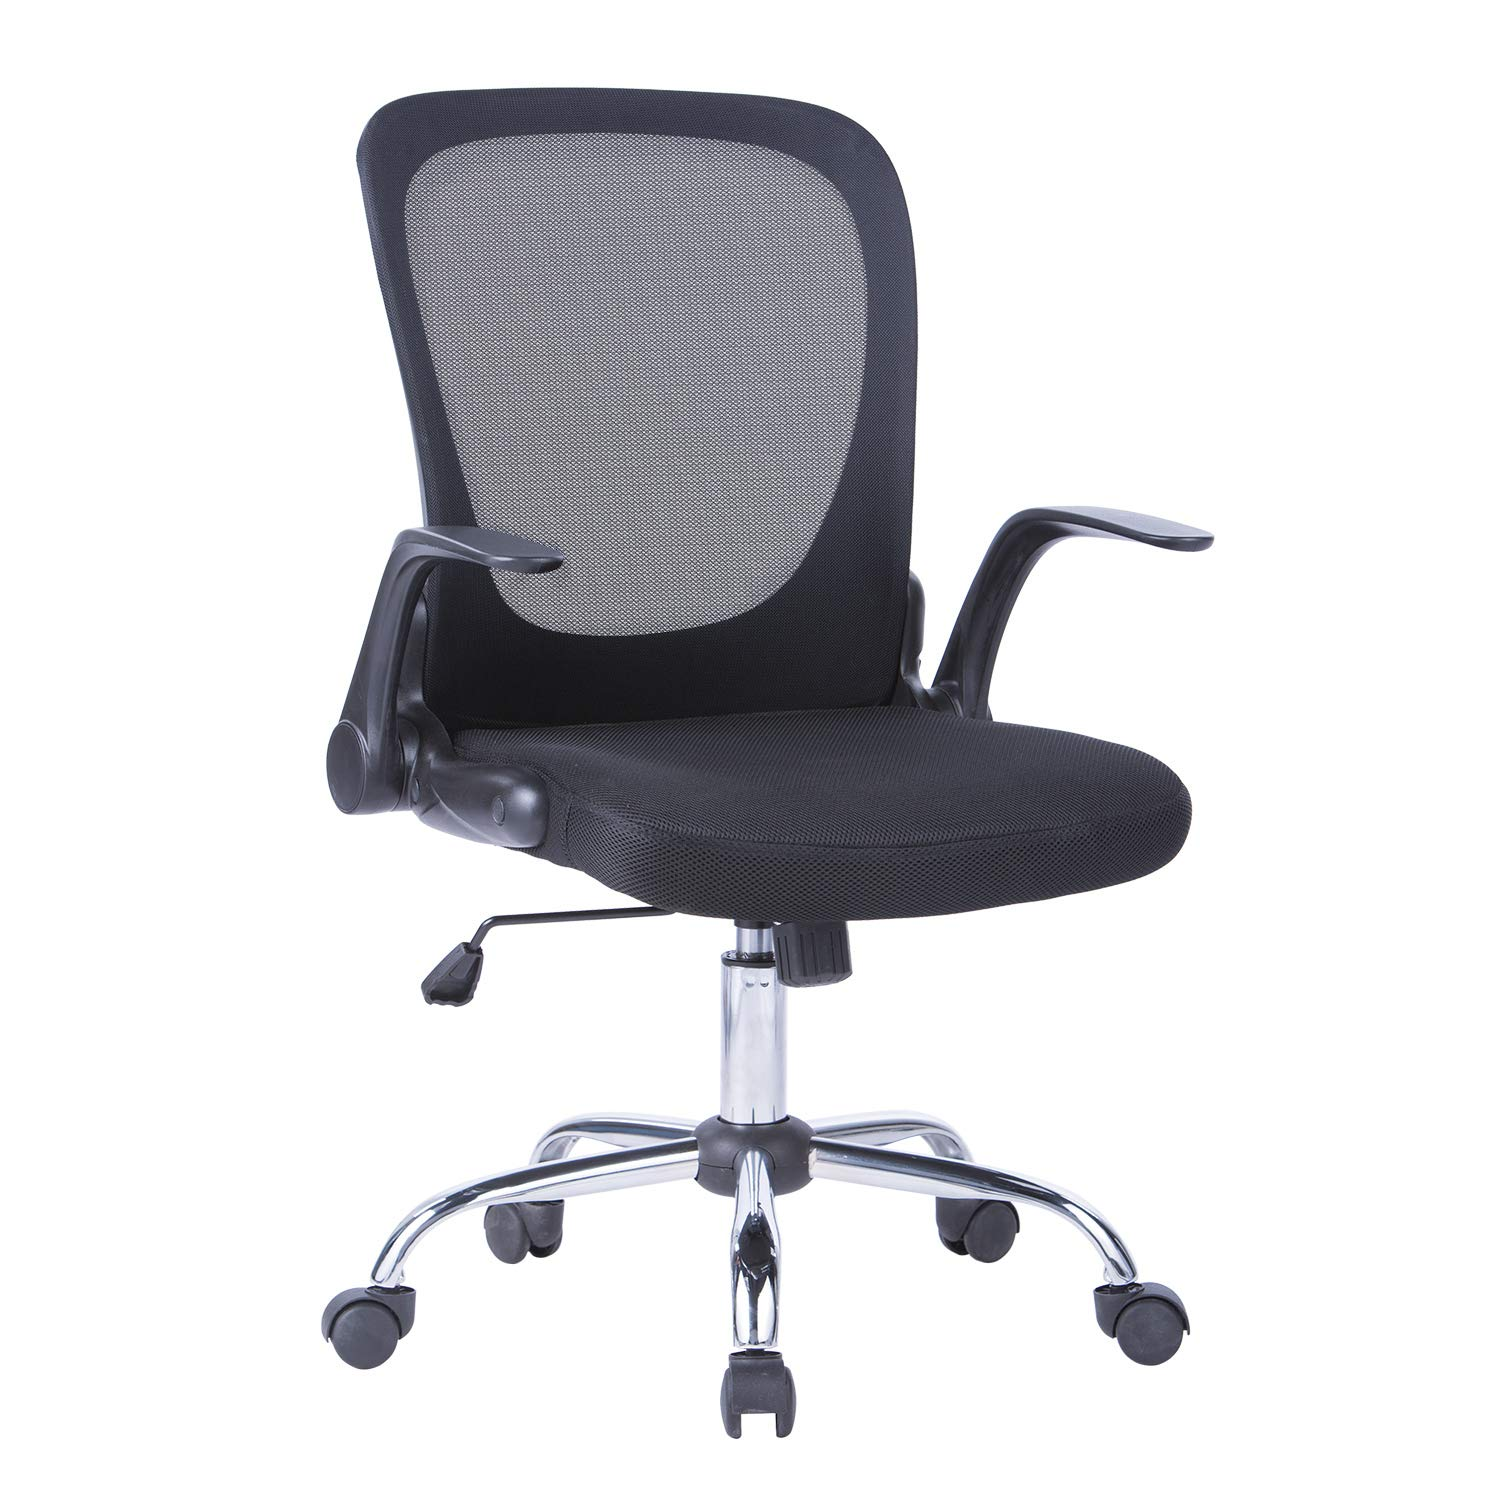 LIANFENG Mid Back Mesh Office Desk Task Chair